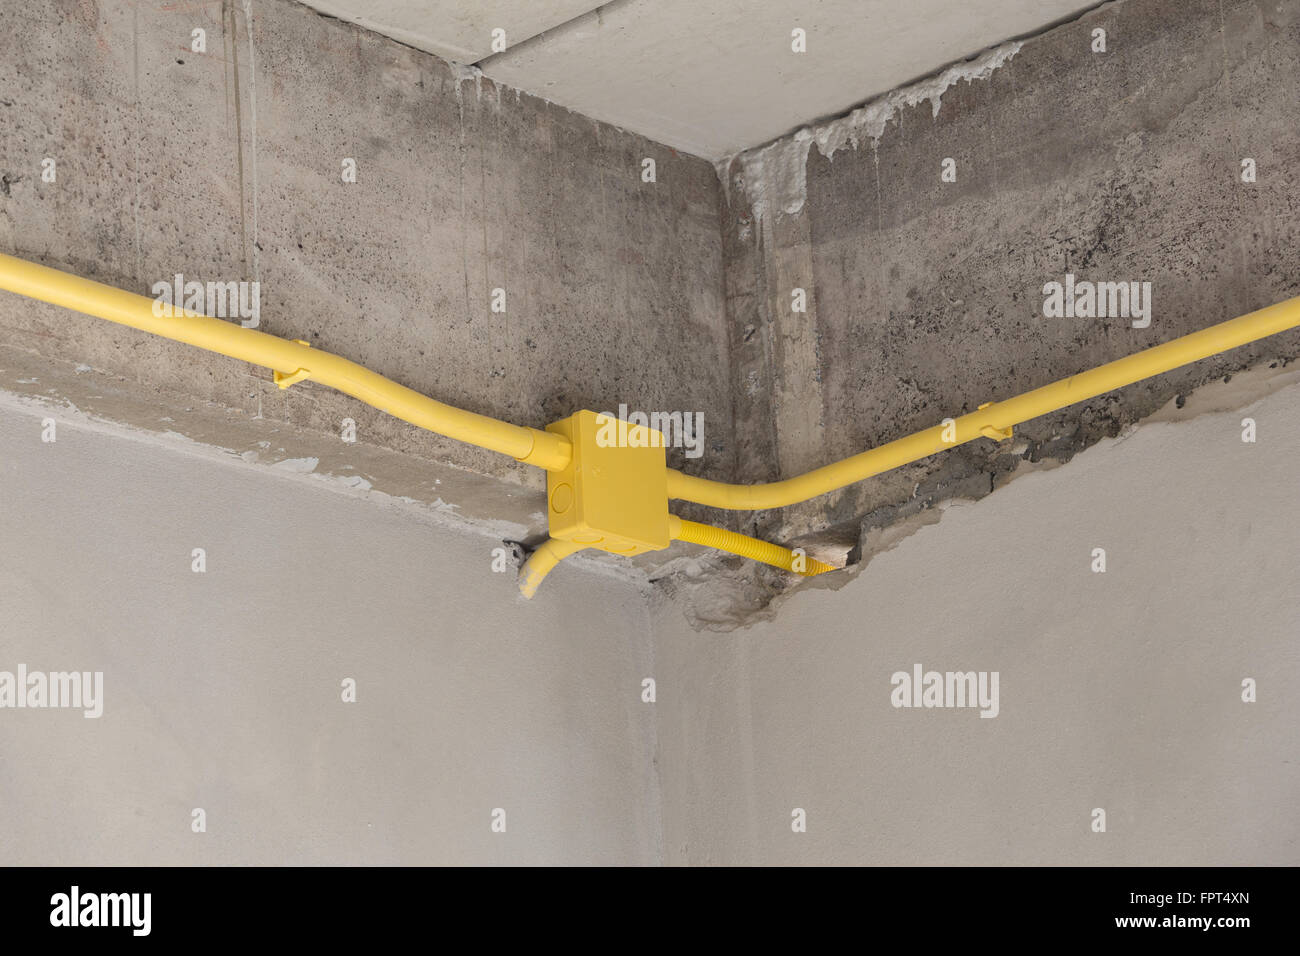 Concrete Electrical Wiring Browse Data Diagram Pipes Yellow Pvc For Boxes And Wires Buried On Aircraft